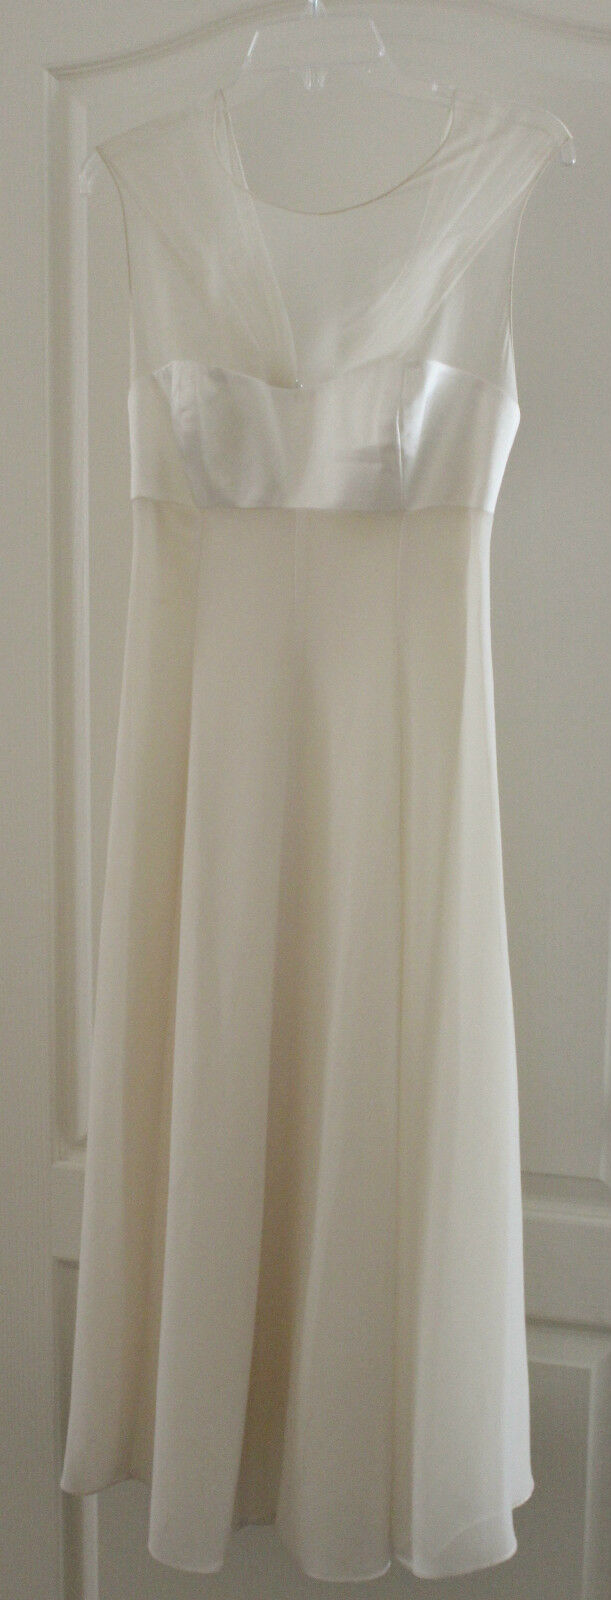 Ever Beauty Formal Wedding Dress or Mother of the Bride Dress Size 4 Stunning